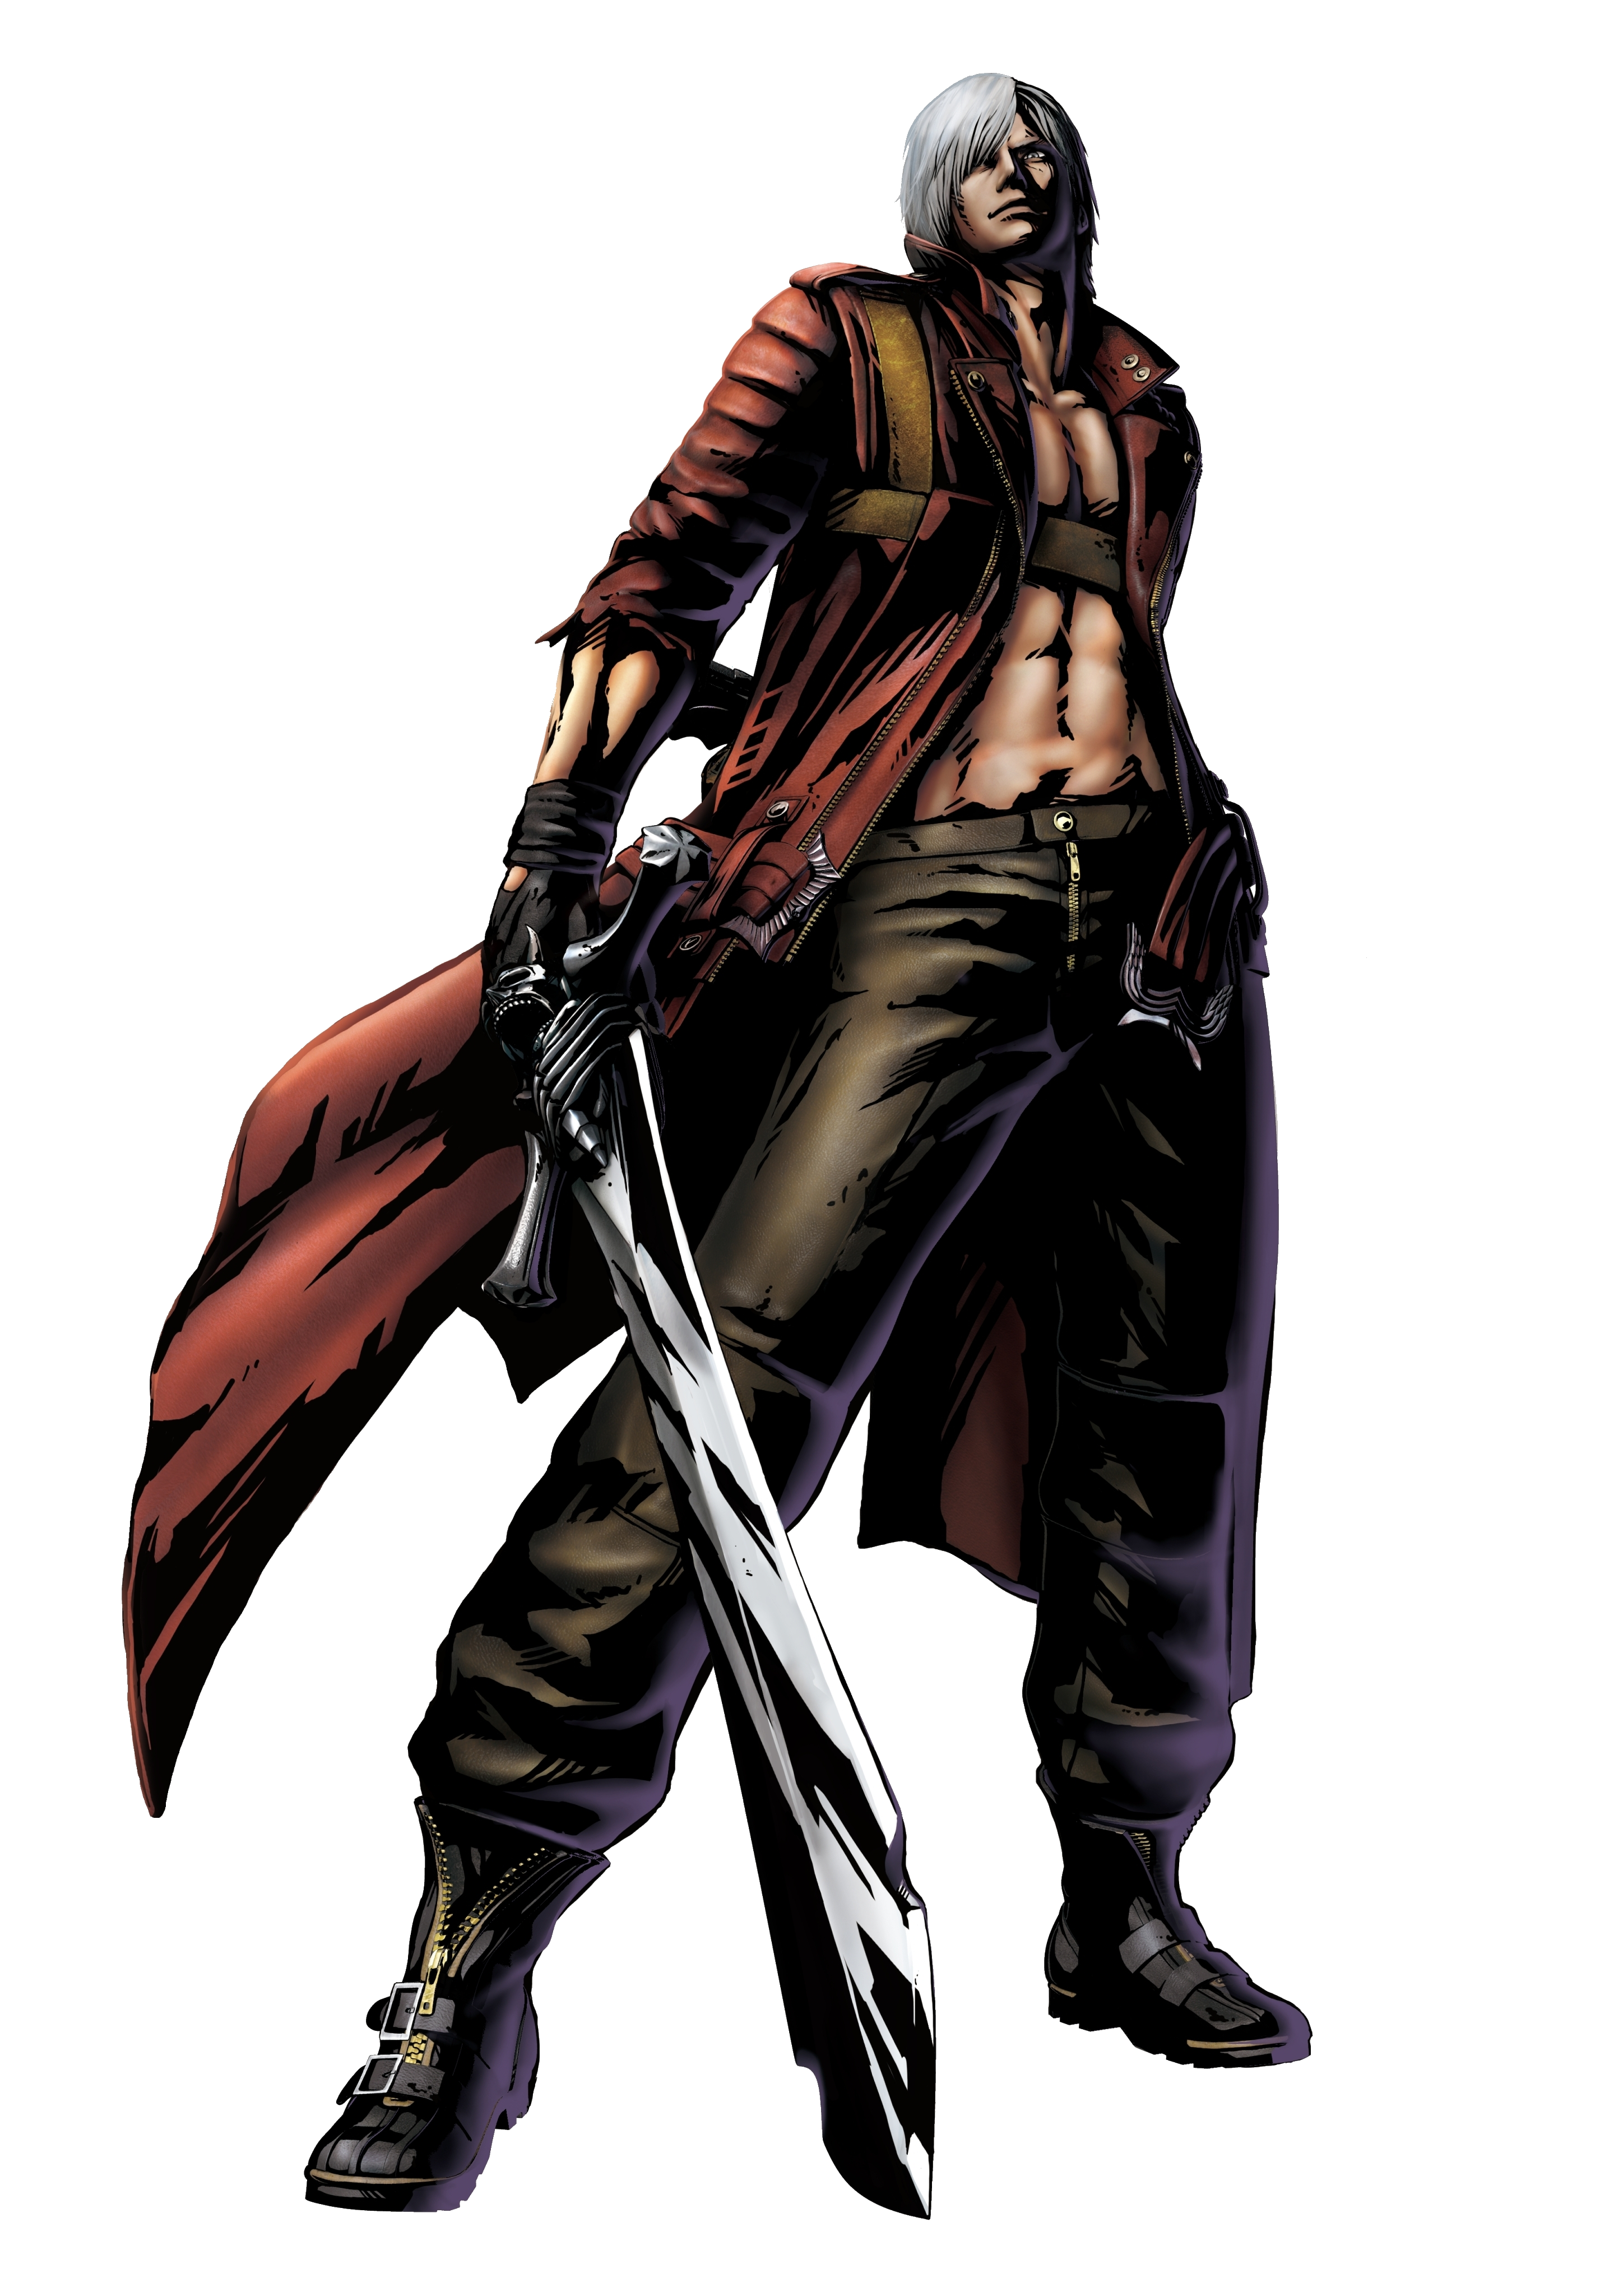 Devil May Cry Evolution Capcom 3 in His Devil May Cry